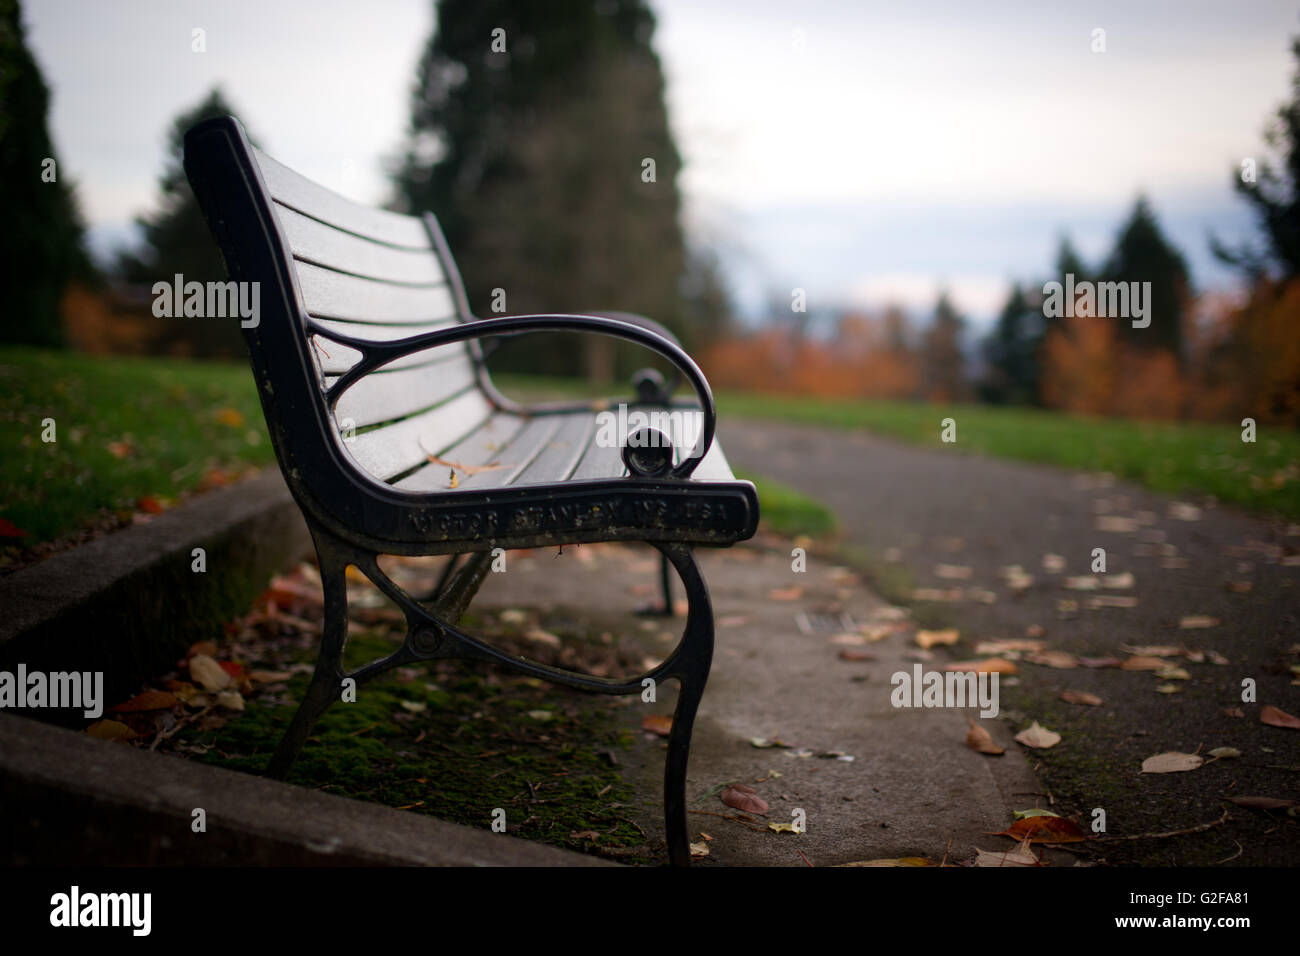 Park Bench Along Path - Stock Image